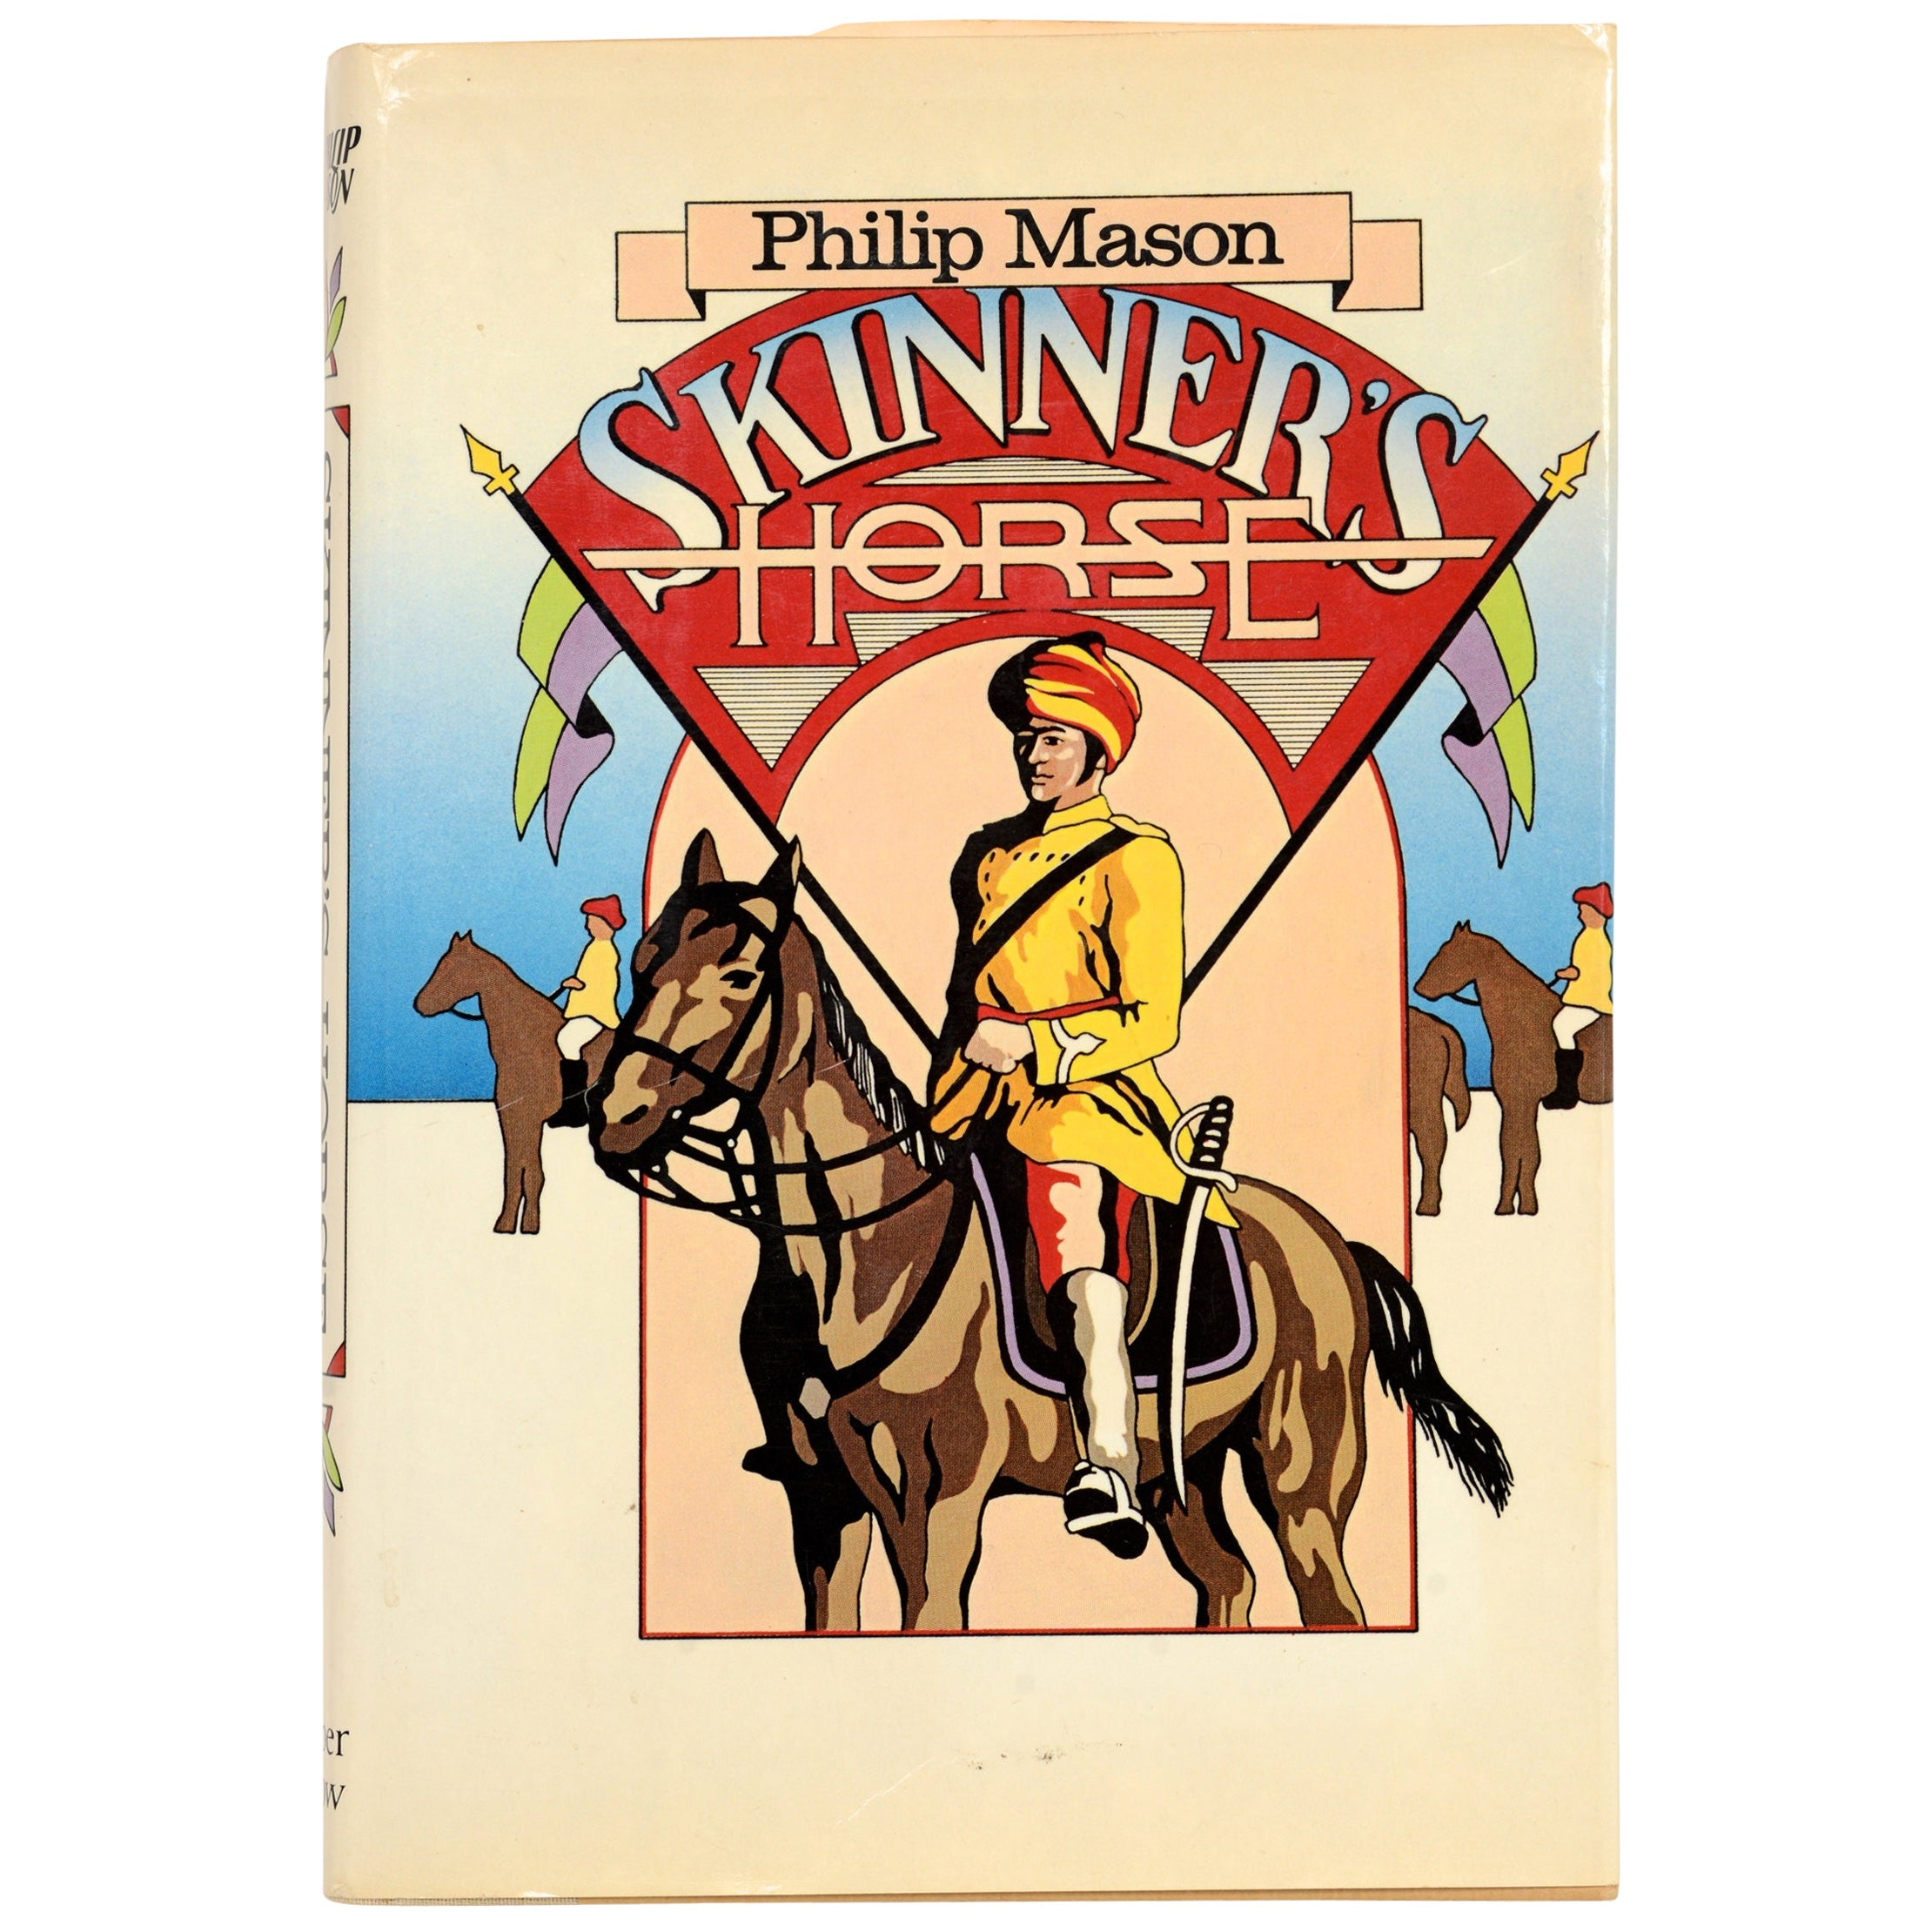 Skinner's Horse by Philip Mason, Stated First Edition